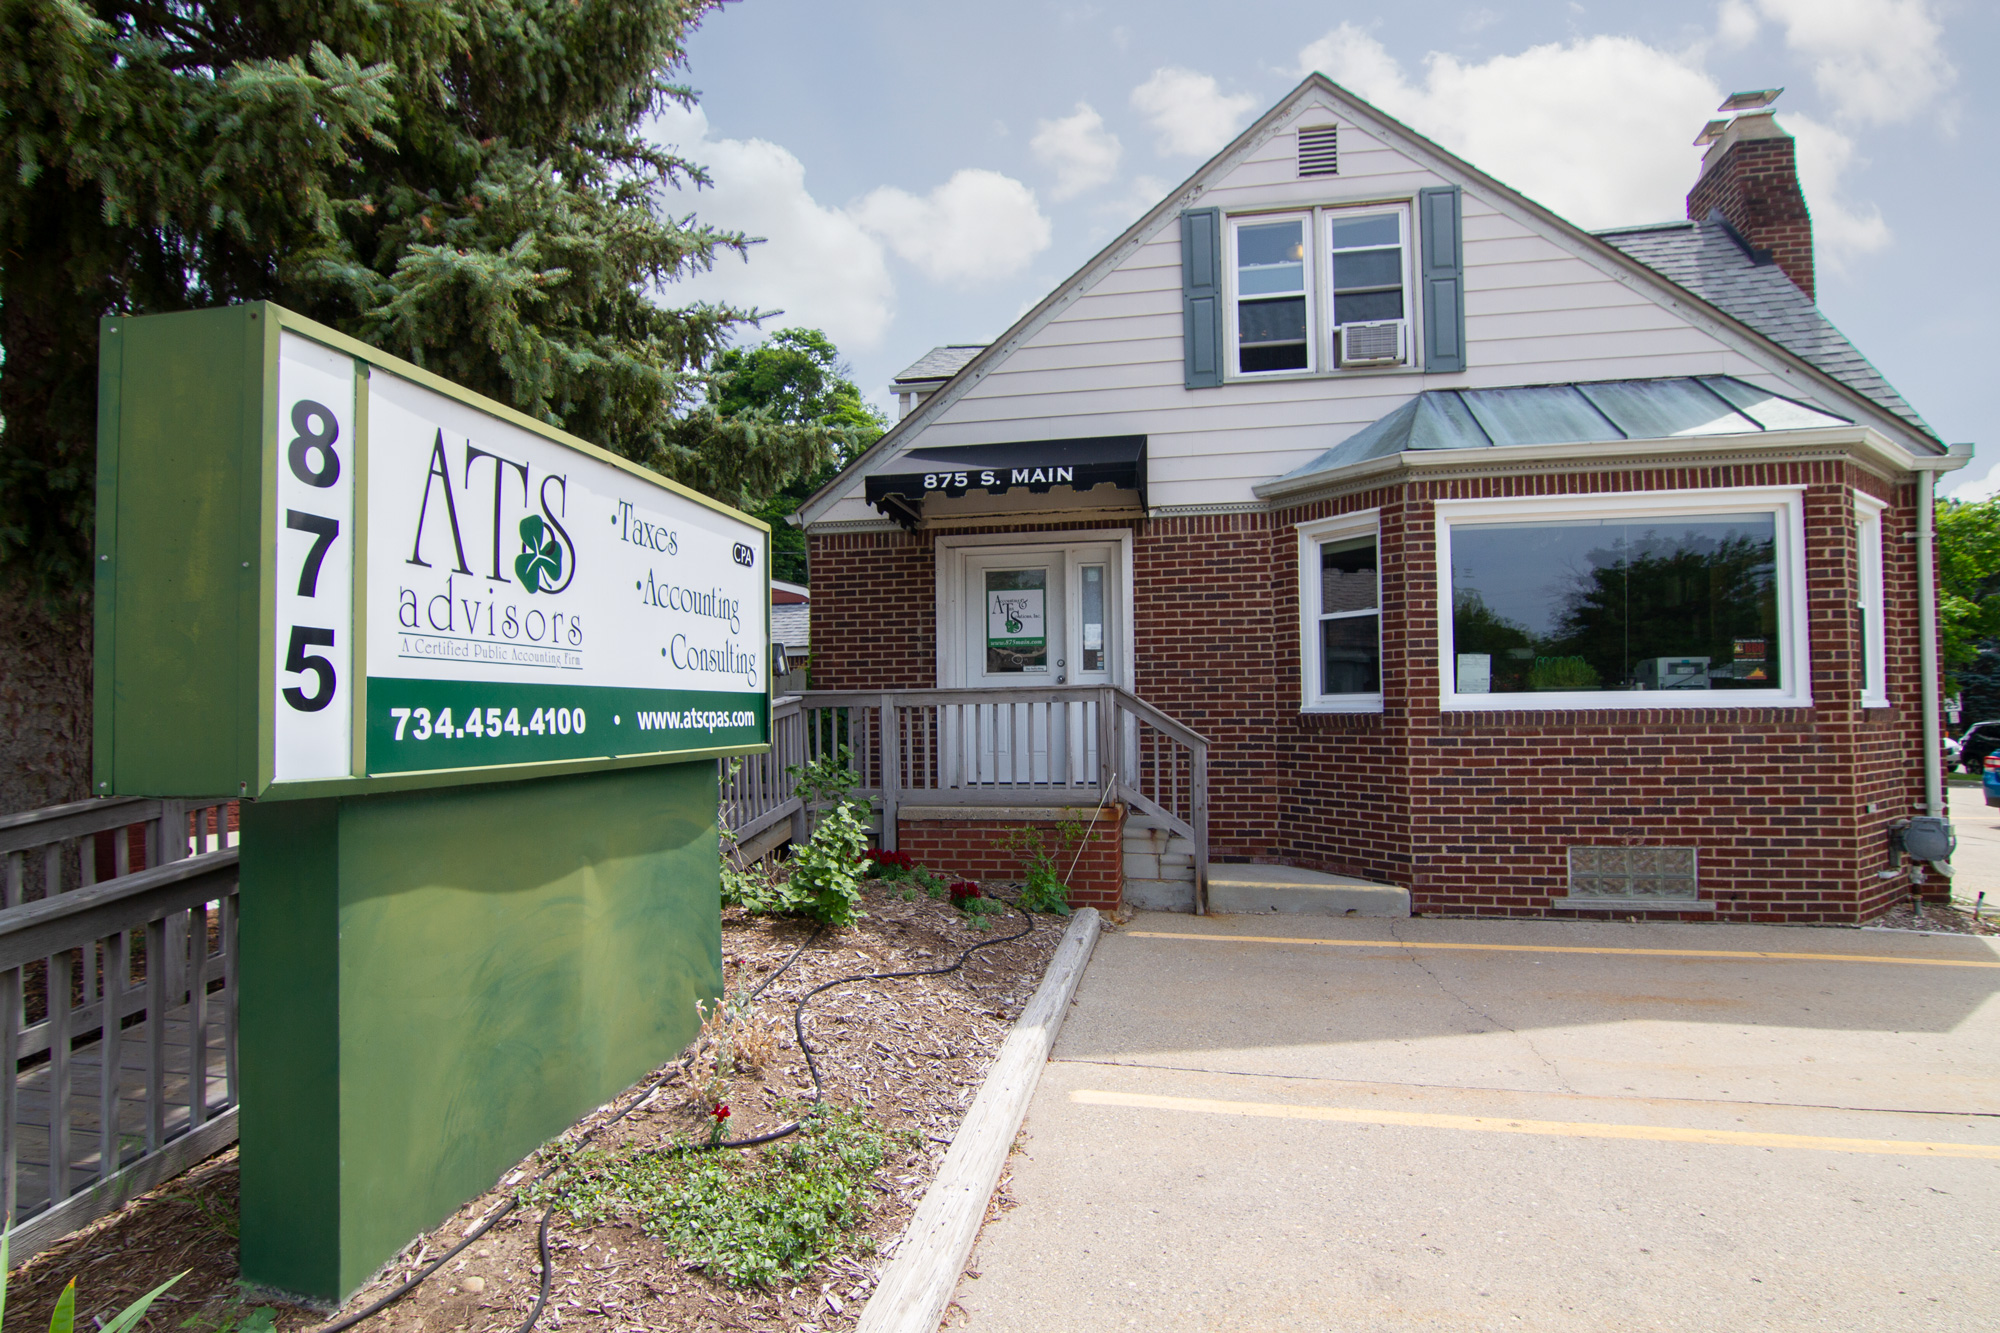 ATS Advisors Plymouth Michigan